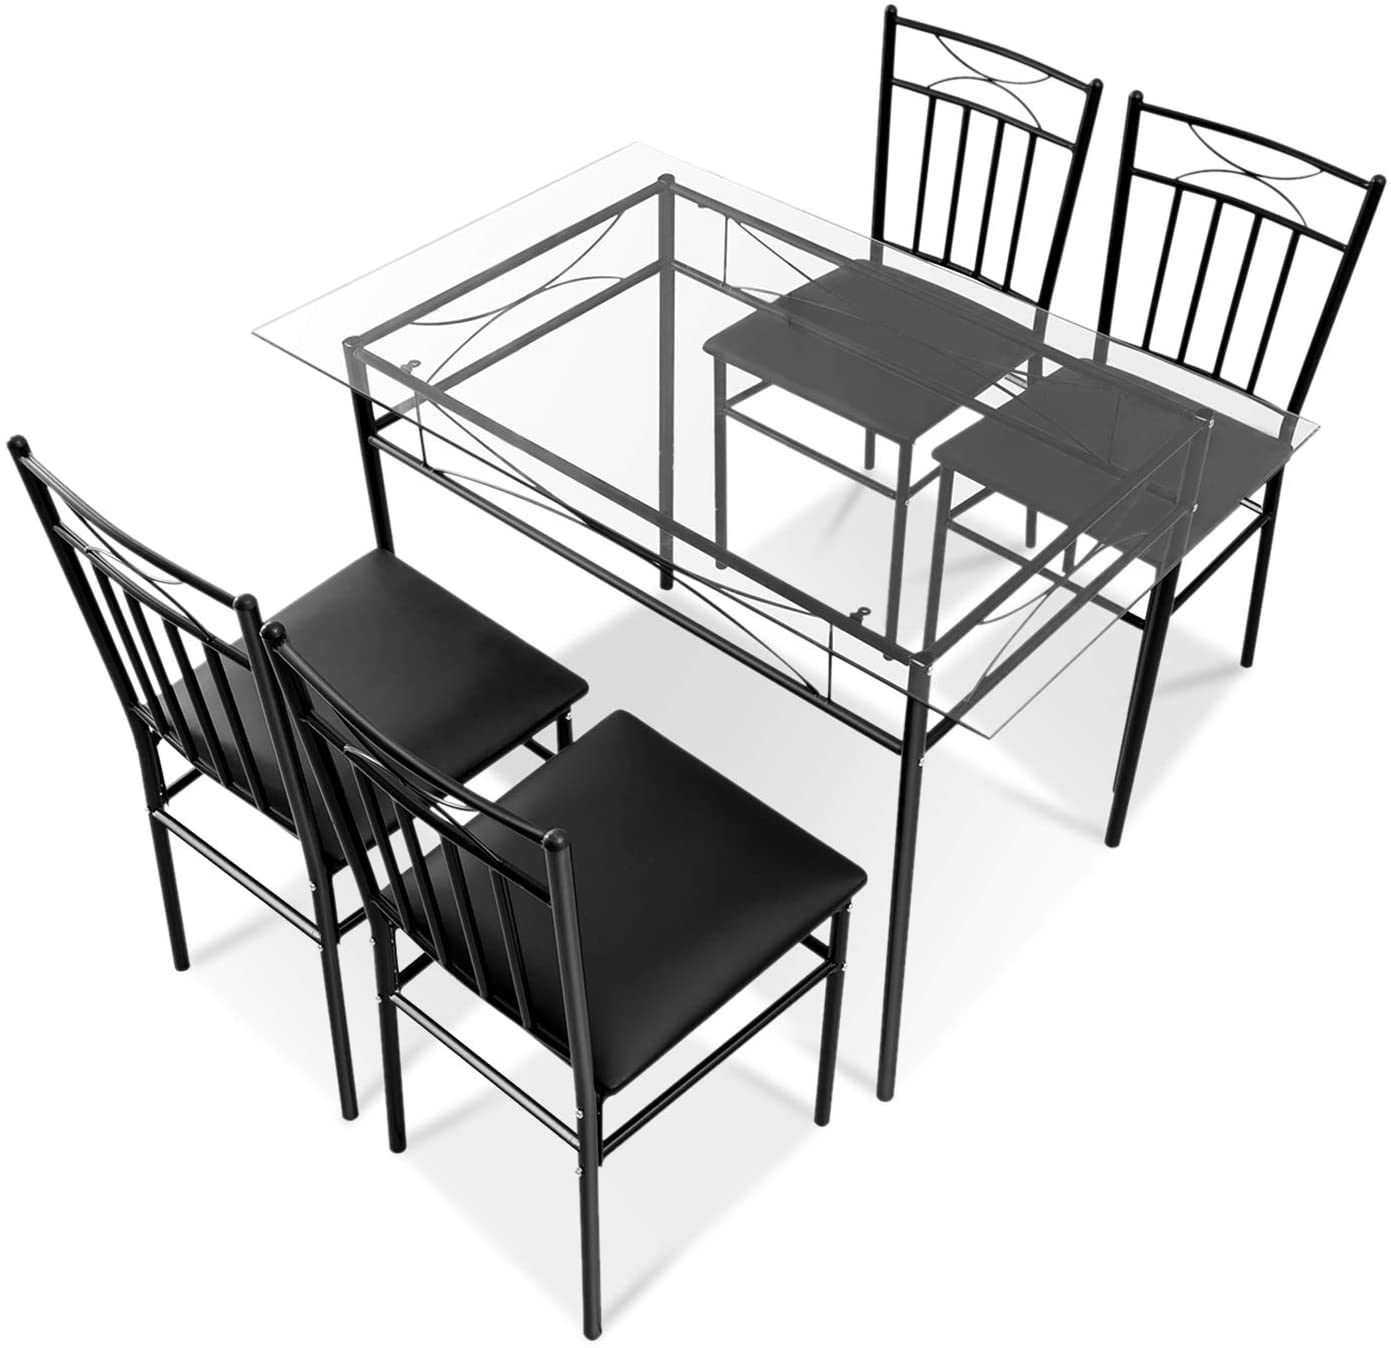 China Dining Table Set 4 Person Home Kitchen Glass Top Dining Table And Chairs Breakfast Furniture Black China Dining Table Dining Room Sets